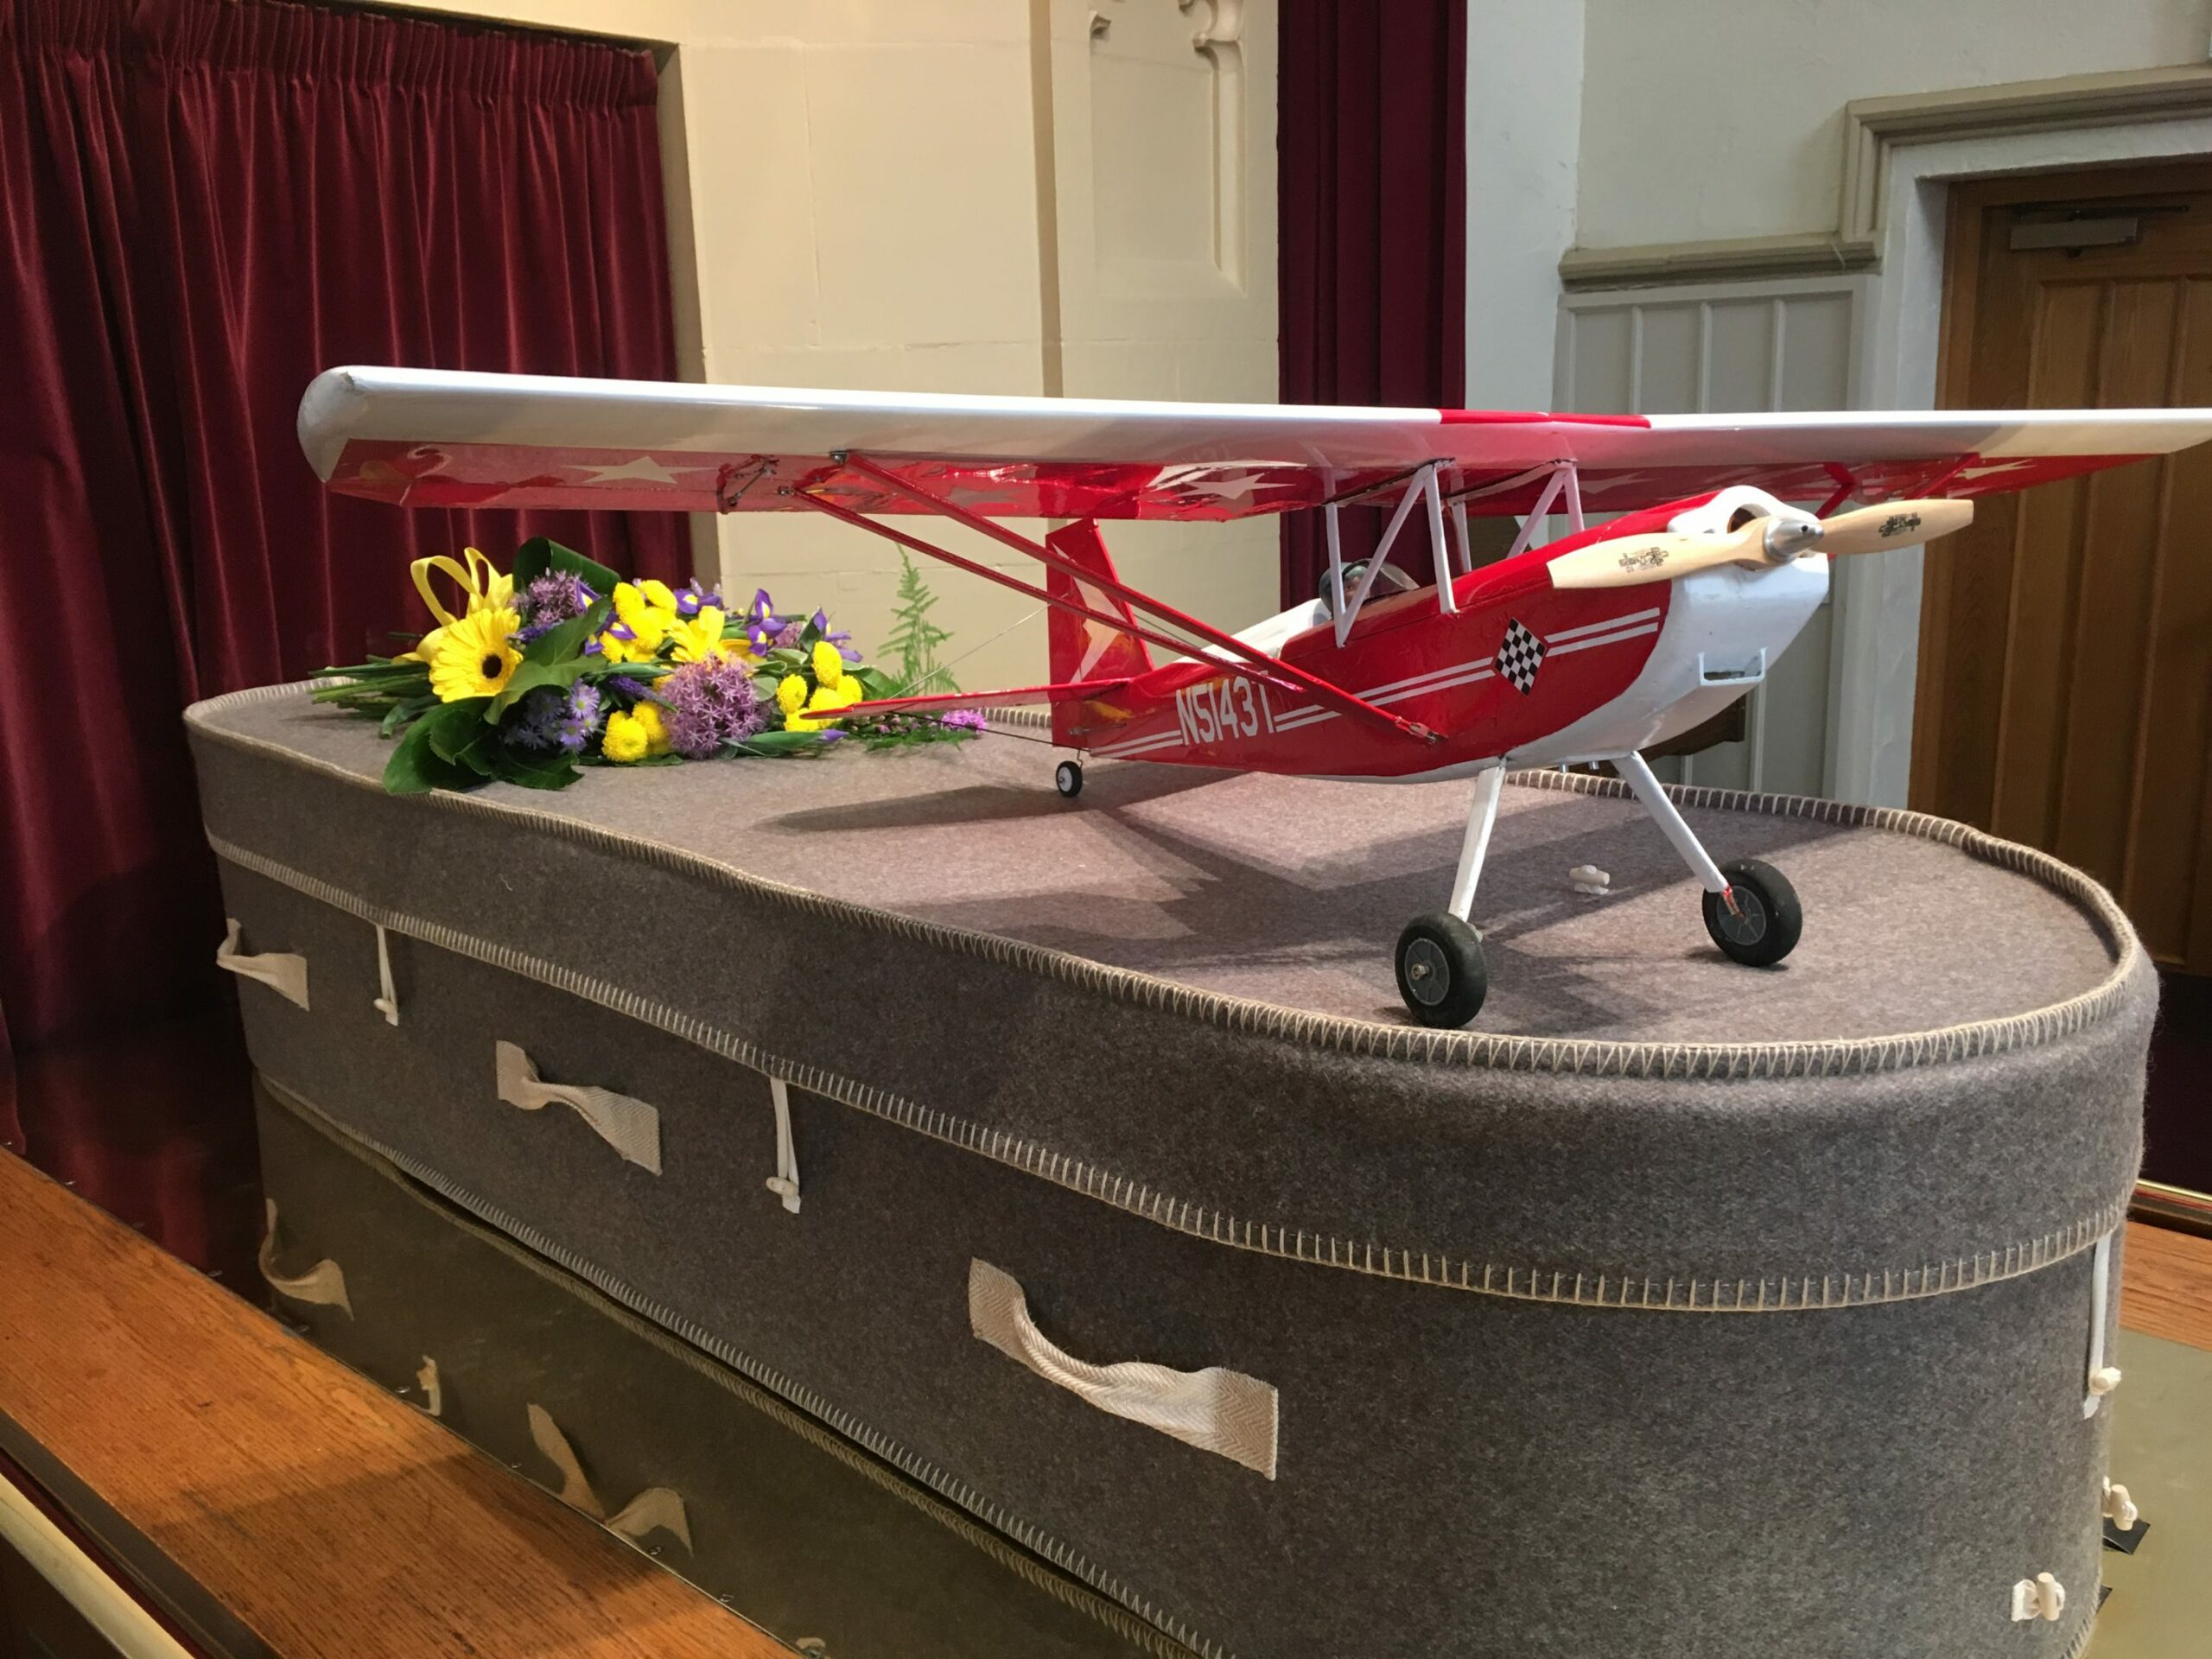 Fabric coffin with a plane on